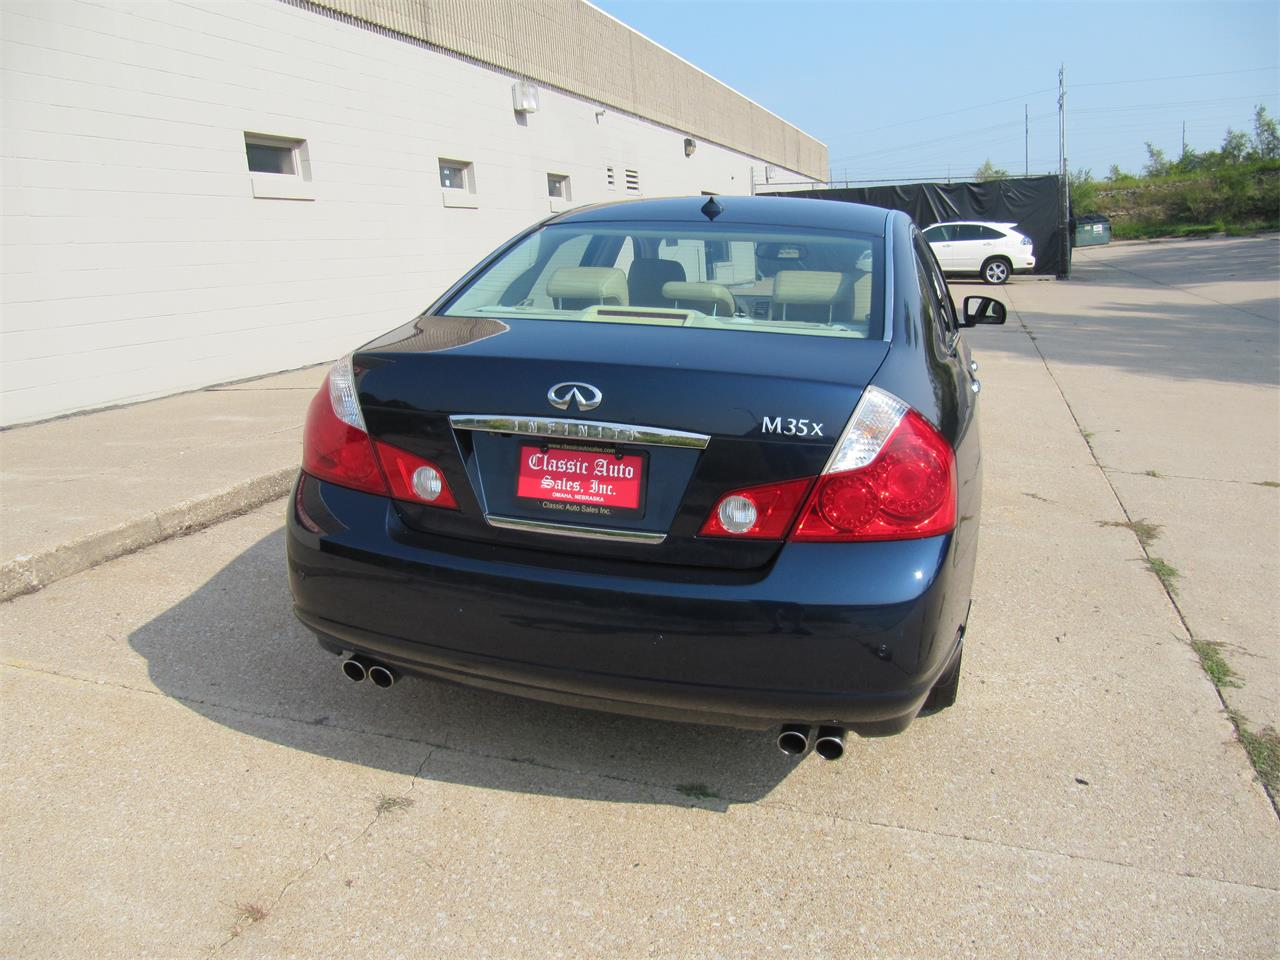 2006 Infiniti M35 For Sale Cc 1138130 Remote Starter M35x Large Picture Of 06 Oe6q